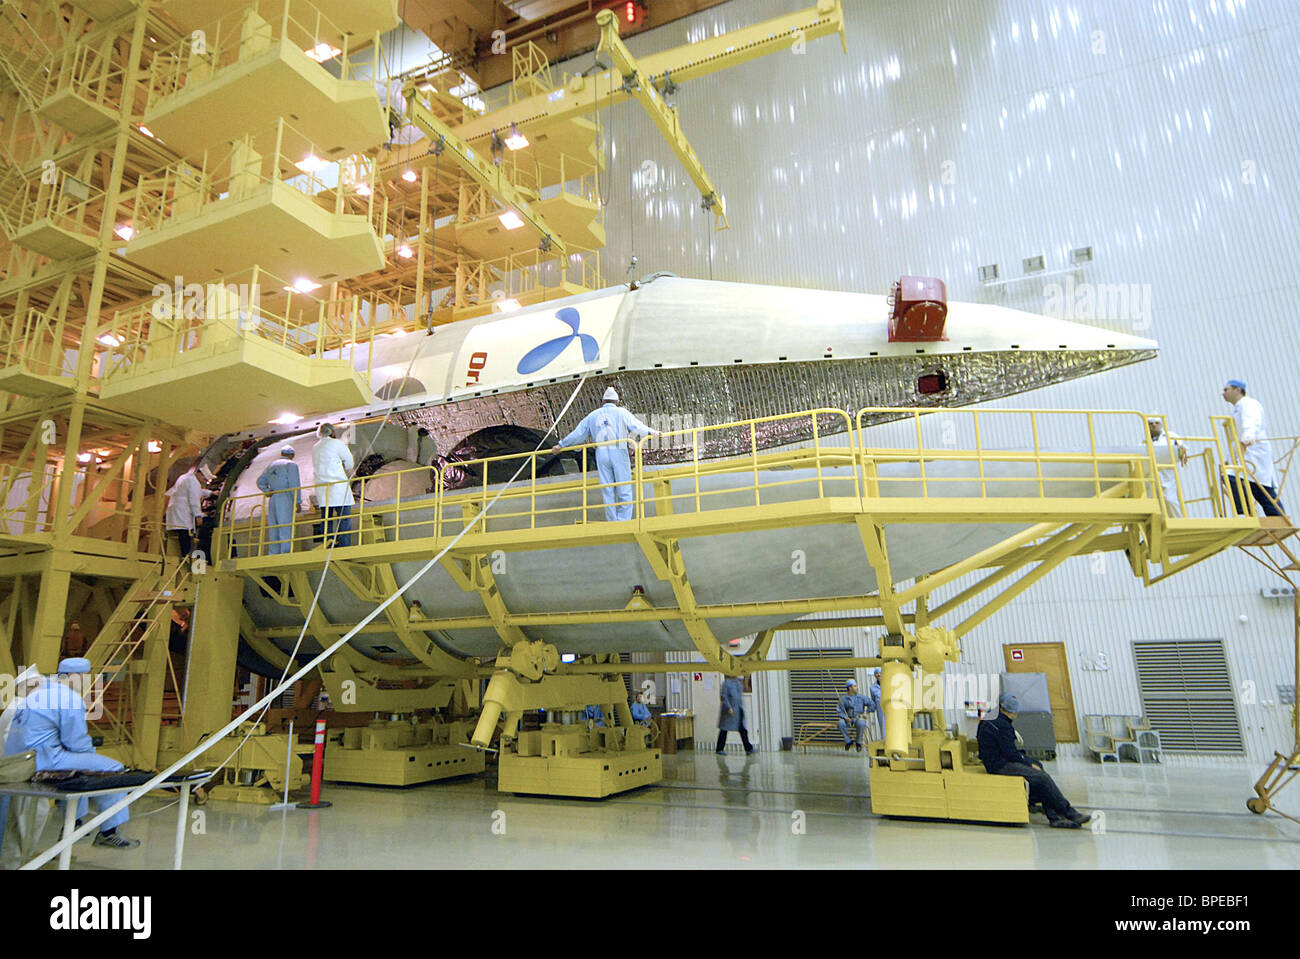 Proton-M and Progress M-63 rockets being assembled at Baikonur Cosmodrome in preparation for Thor-2R launch - Stock Image